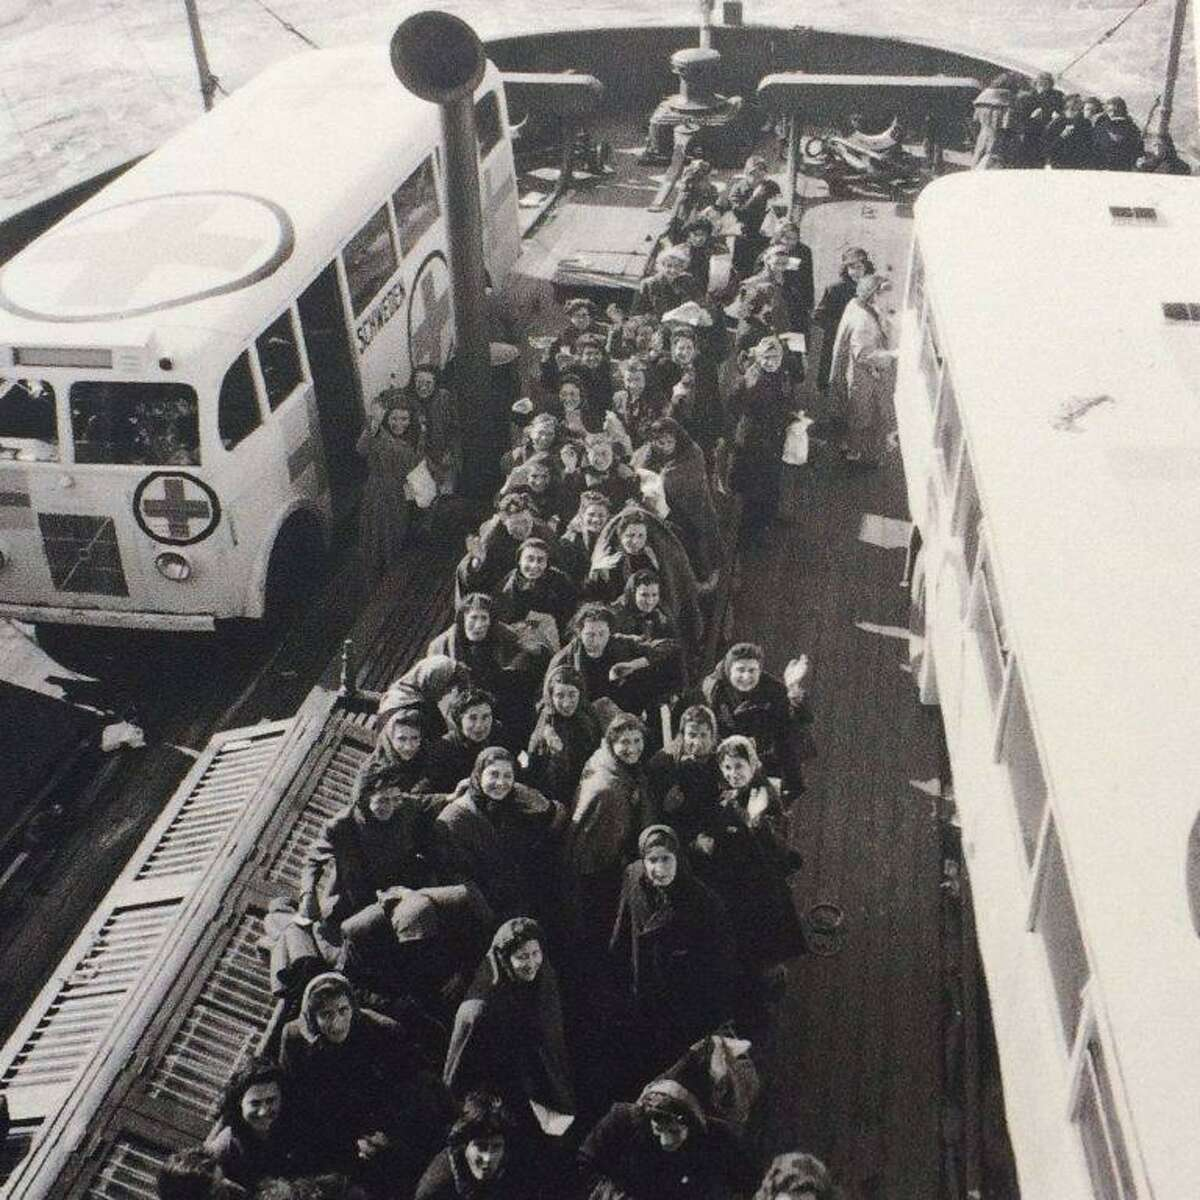 Ravensbruck survivors and the buses arrive on the ferry to Malmo, Sweden. In the desperate, final weeks of WWII, as the German SS acted on orders not to leave one prisoner behind to fall into Allied hands, the Swedish government rushed their famous